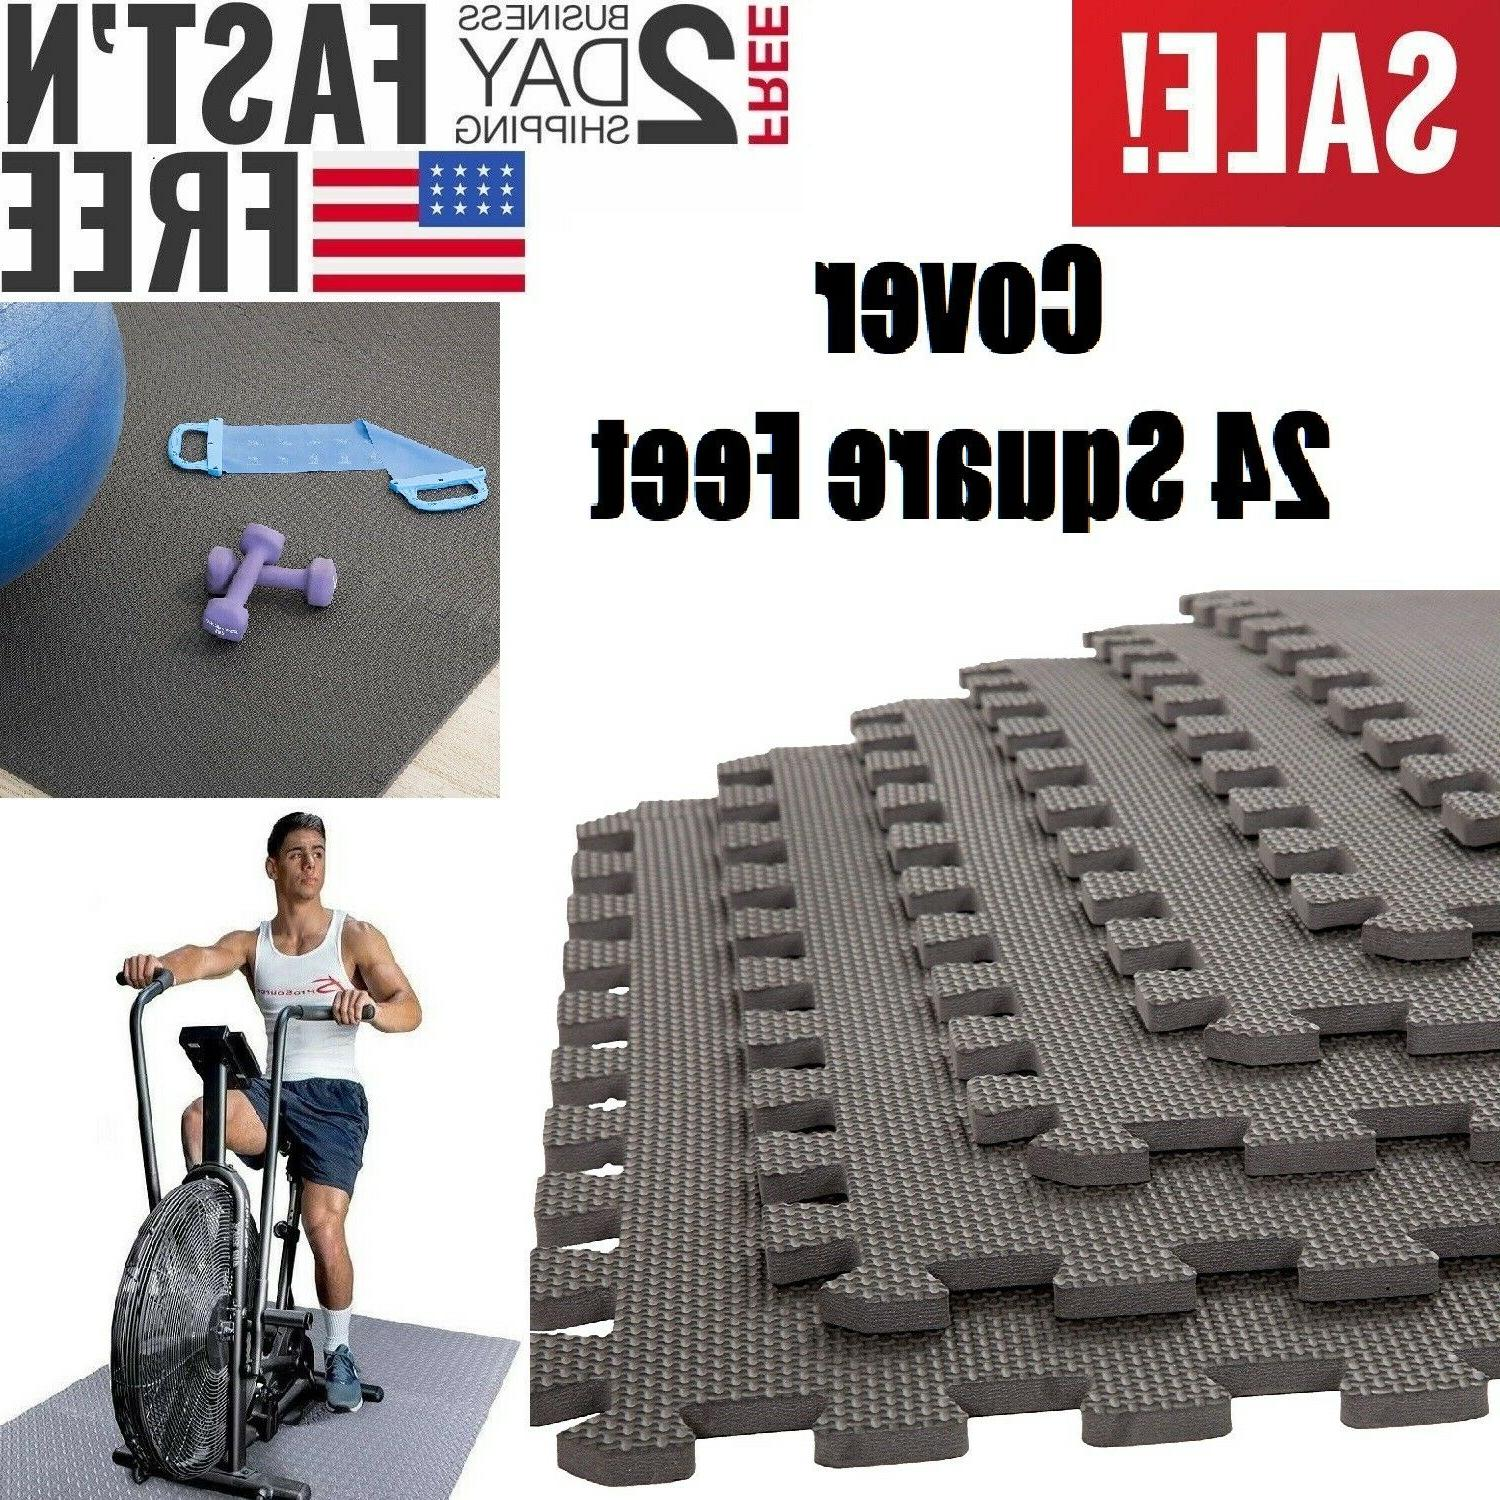 Floor Mat Exercise GYM RUBBER FLOORING Tiles Garage Home Fit